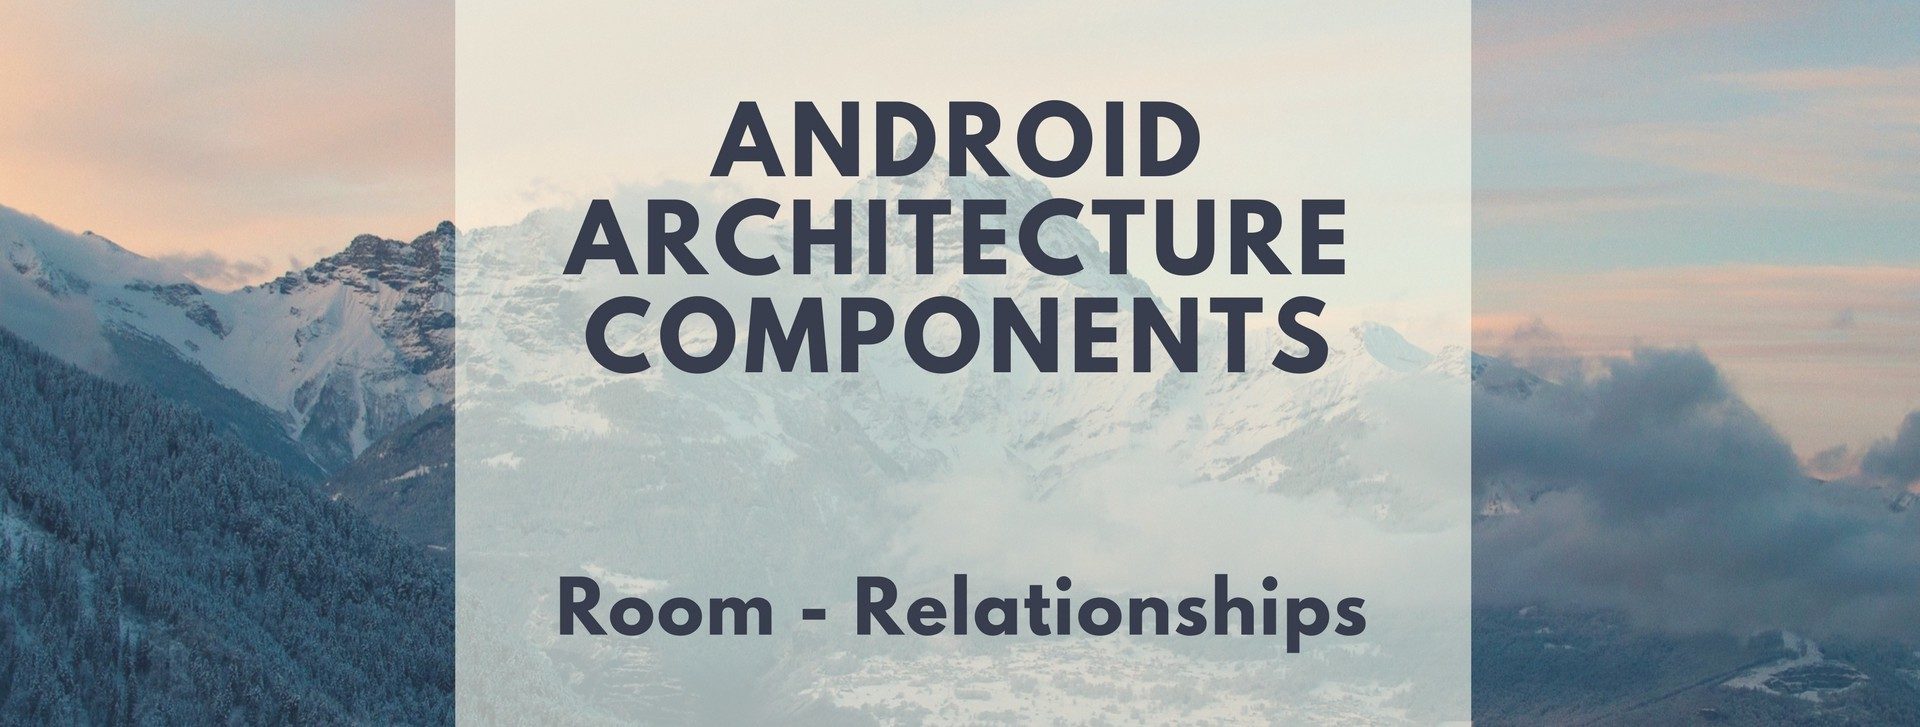 Android Architecture Components: Room — Relationships